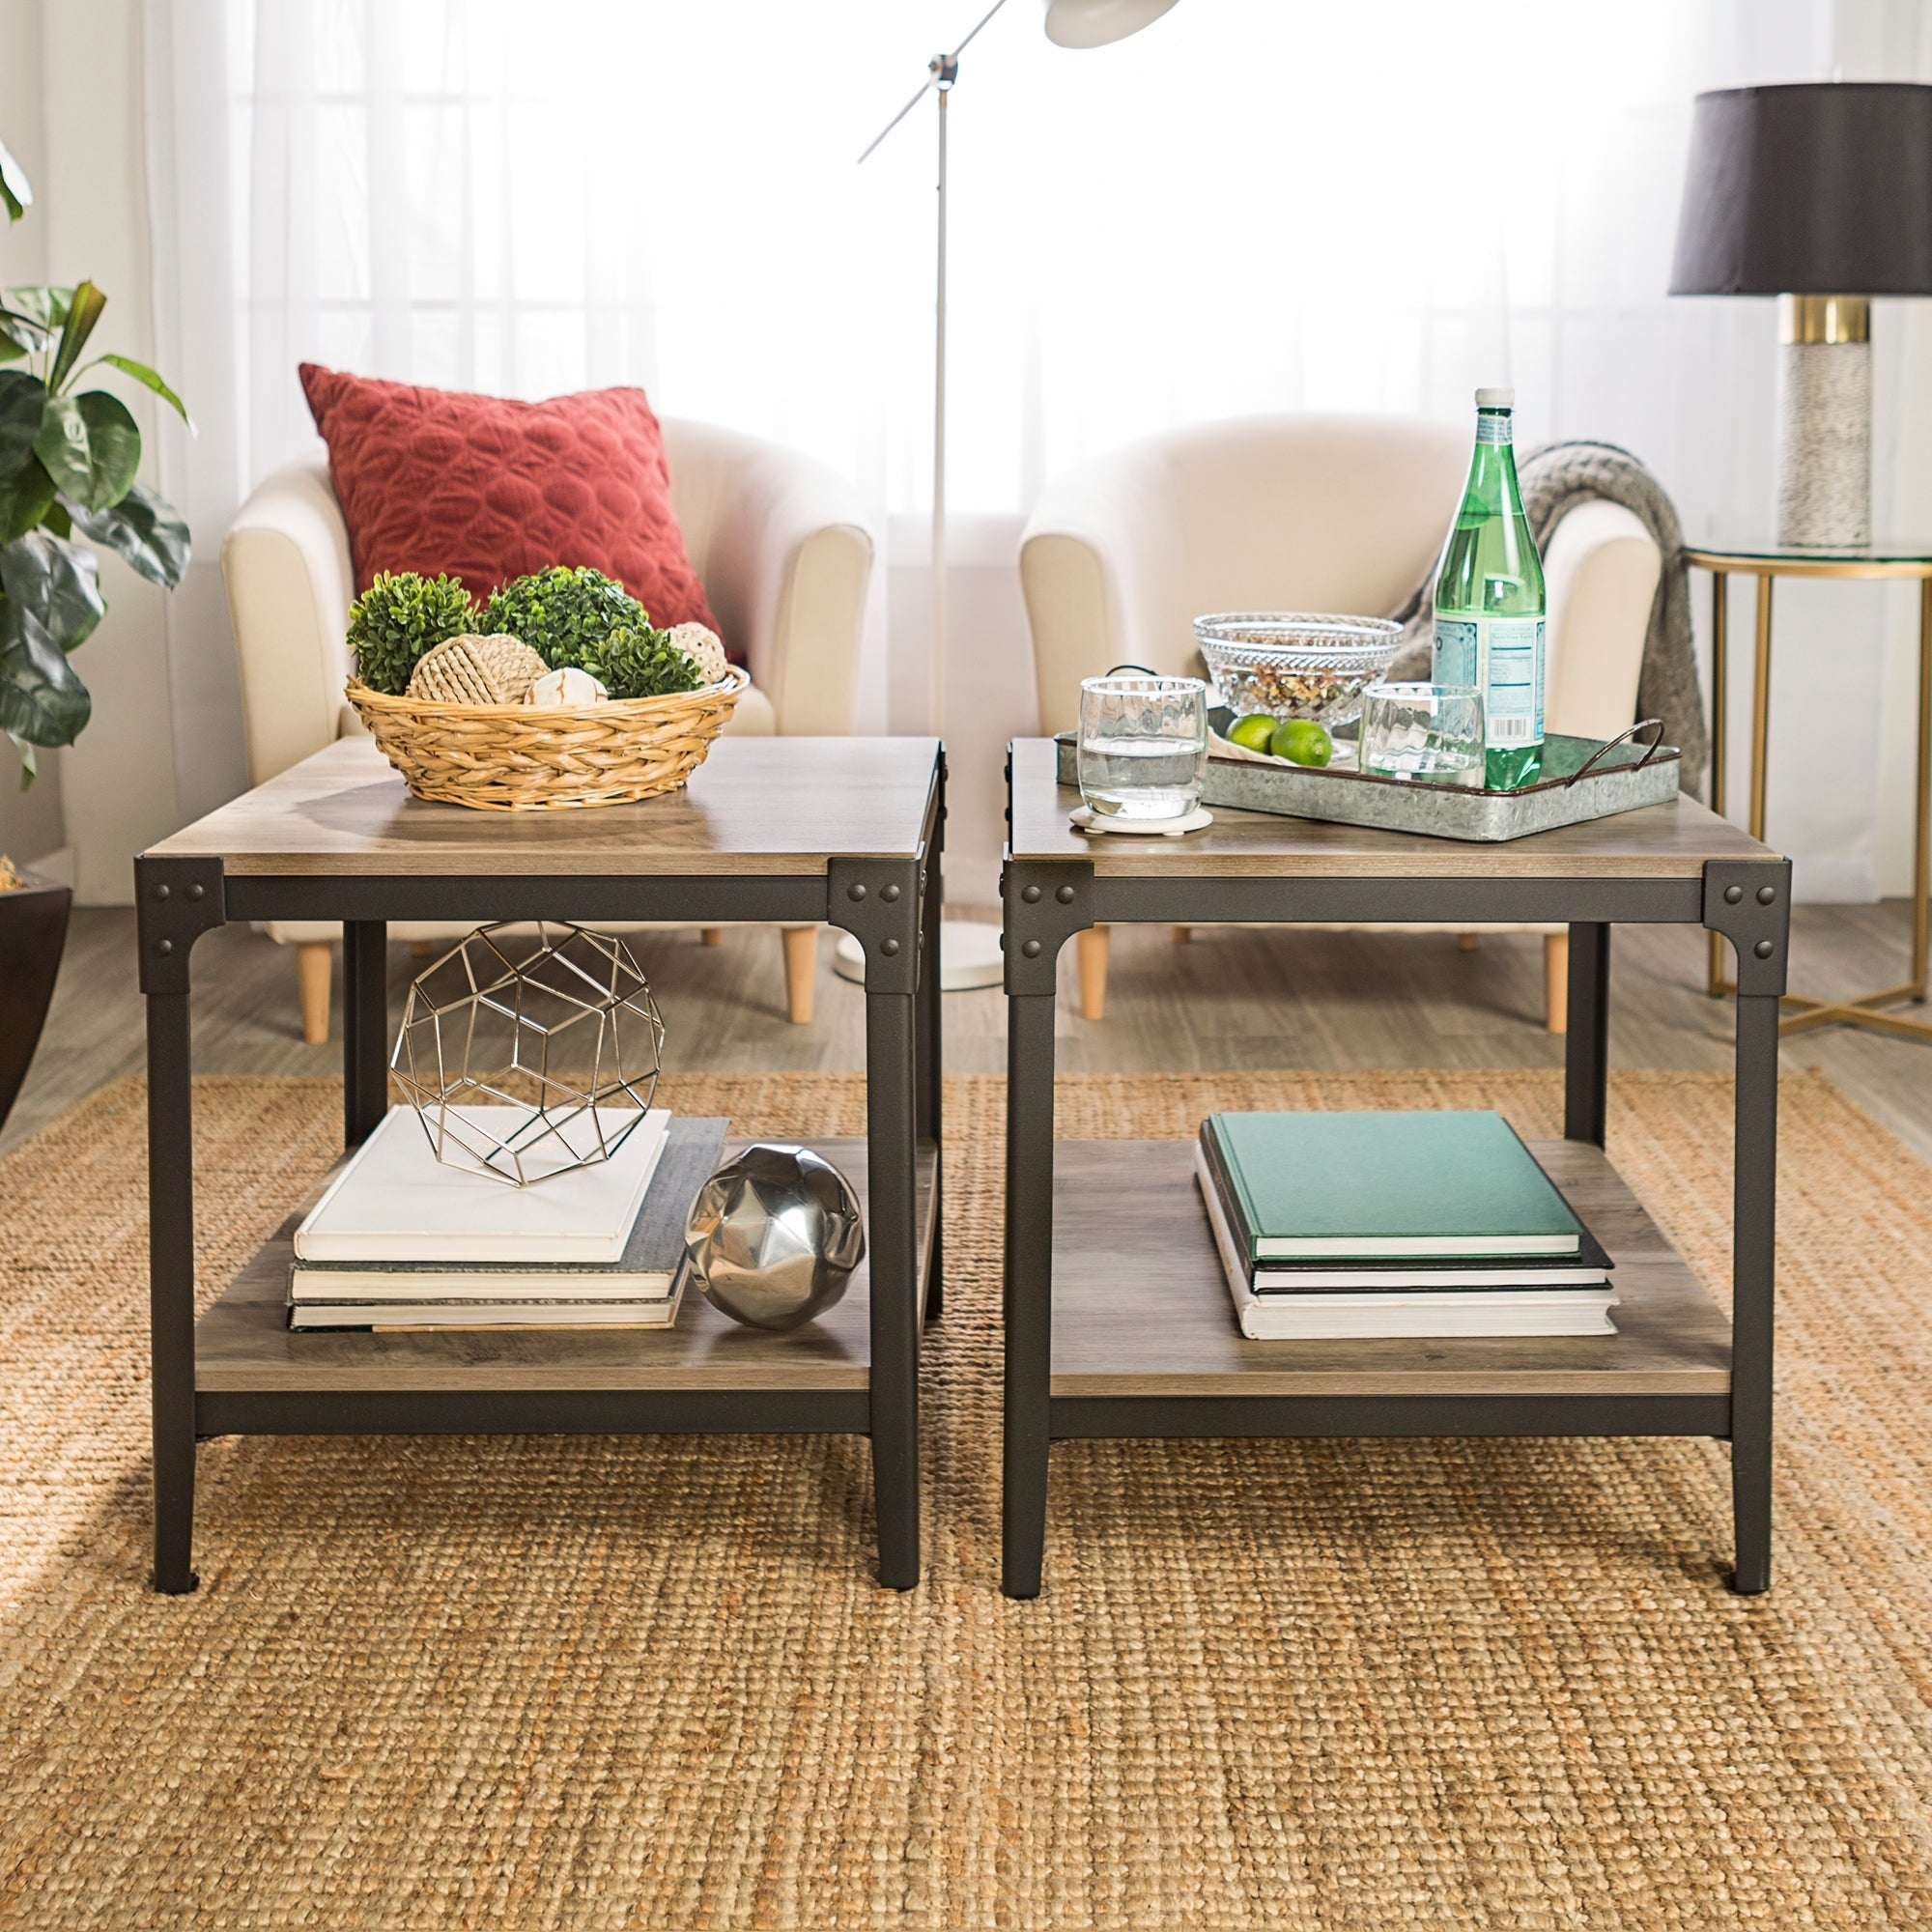 Shop carbon loft witten iron end table set of 2 20 x 20 x 20h on sale free shipping today overstock 18063073